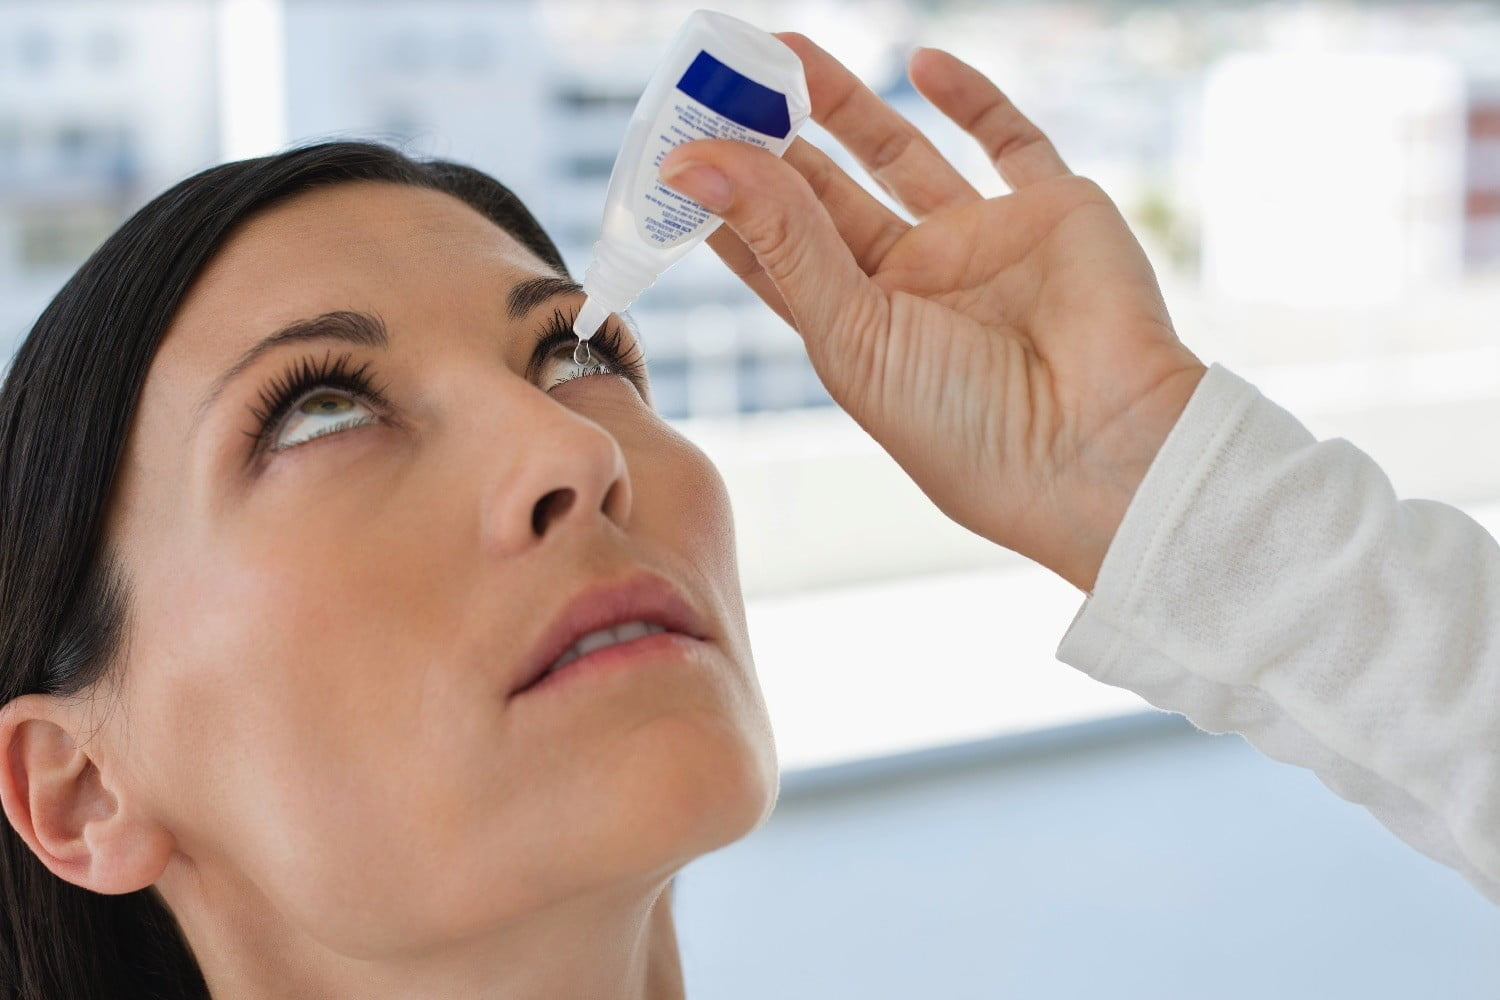 dfef768d2a Vision-Improving Nanoparticle Eyedrops Could End the Need for ...